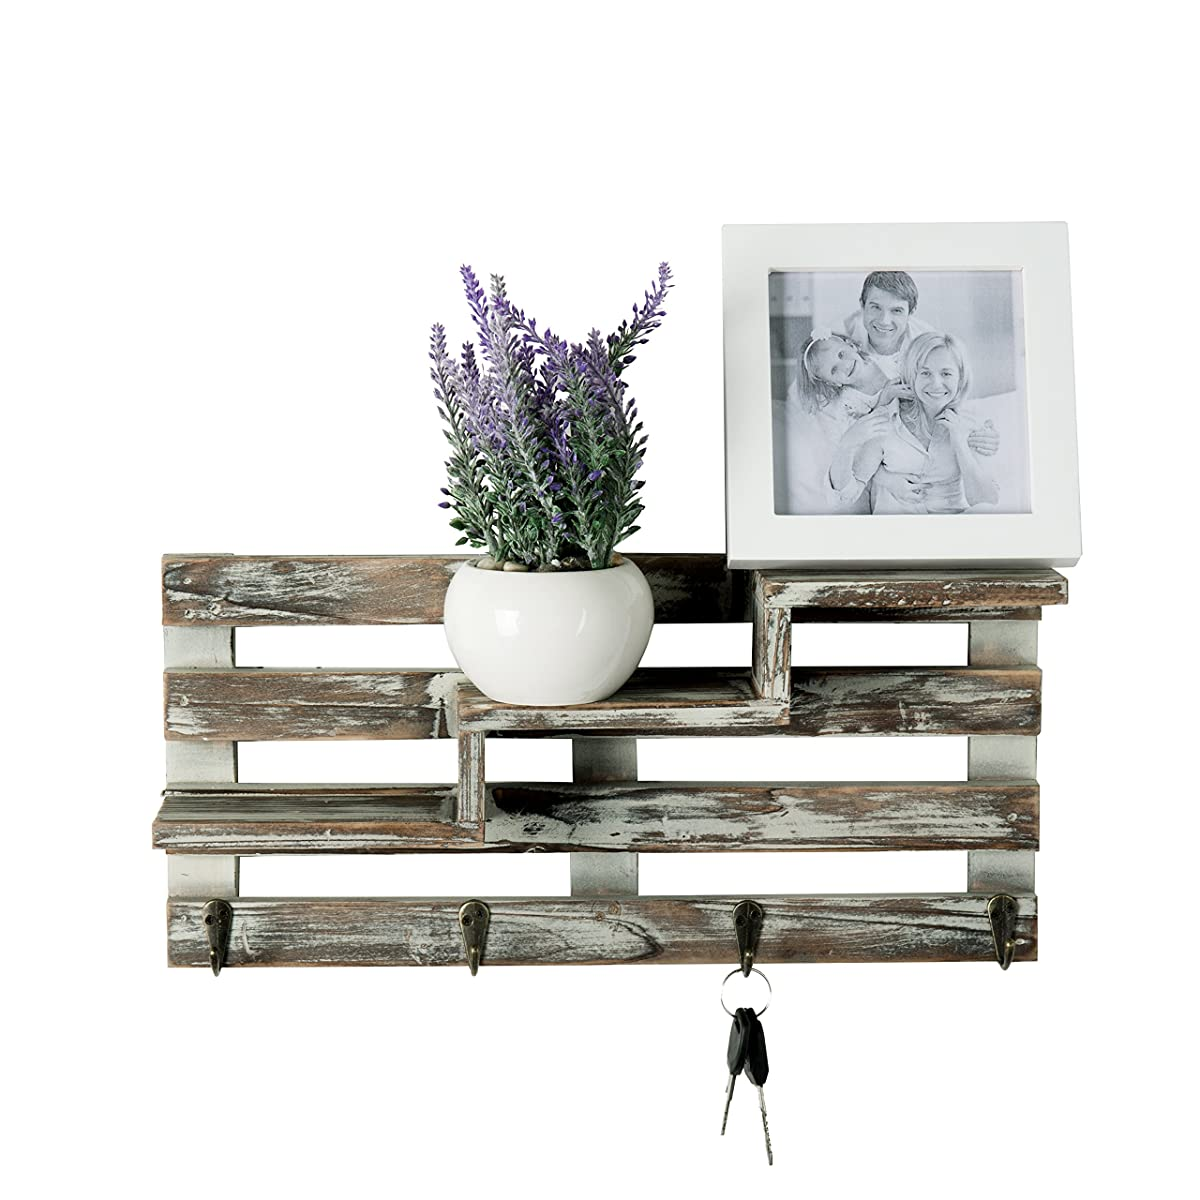 MyGift Rustic Torched Wood Wall Mounted Entryway Organizer Display Shelf Rack with 4 Key Hooks